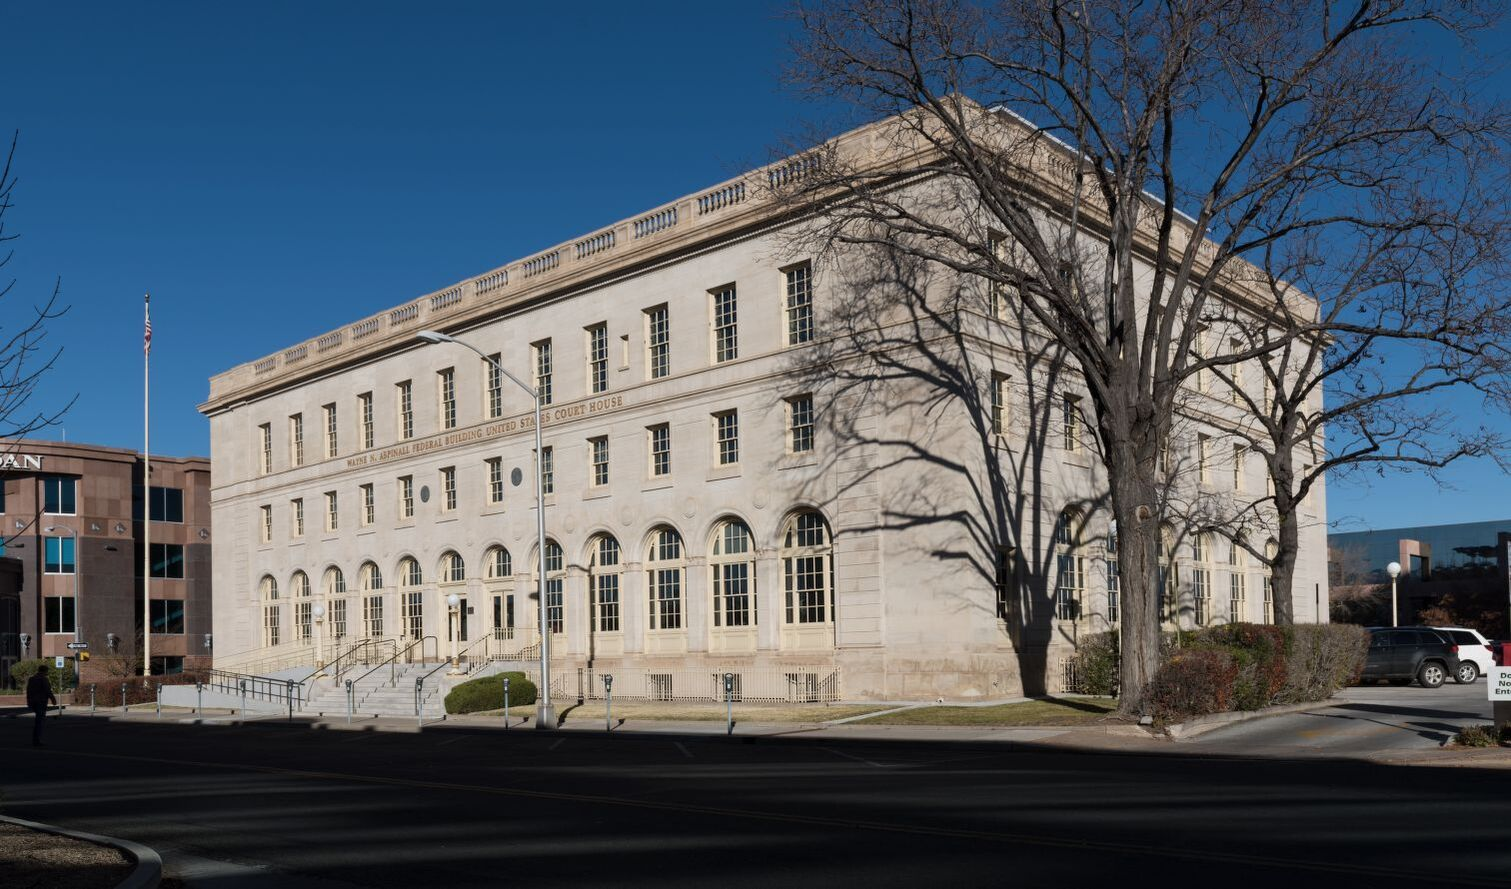 November 2014 photo of exterior of Wayne N. Aspinall Federal Building (Carol Hightower for the General Services Administration)